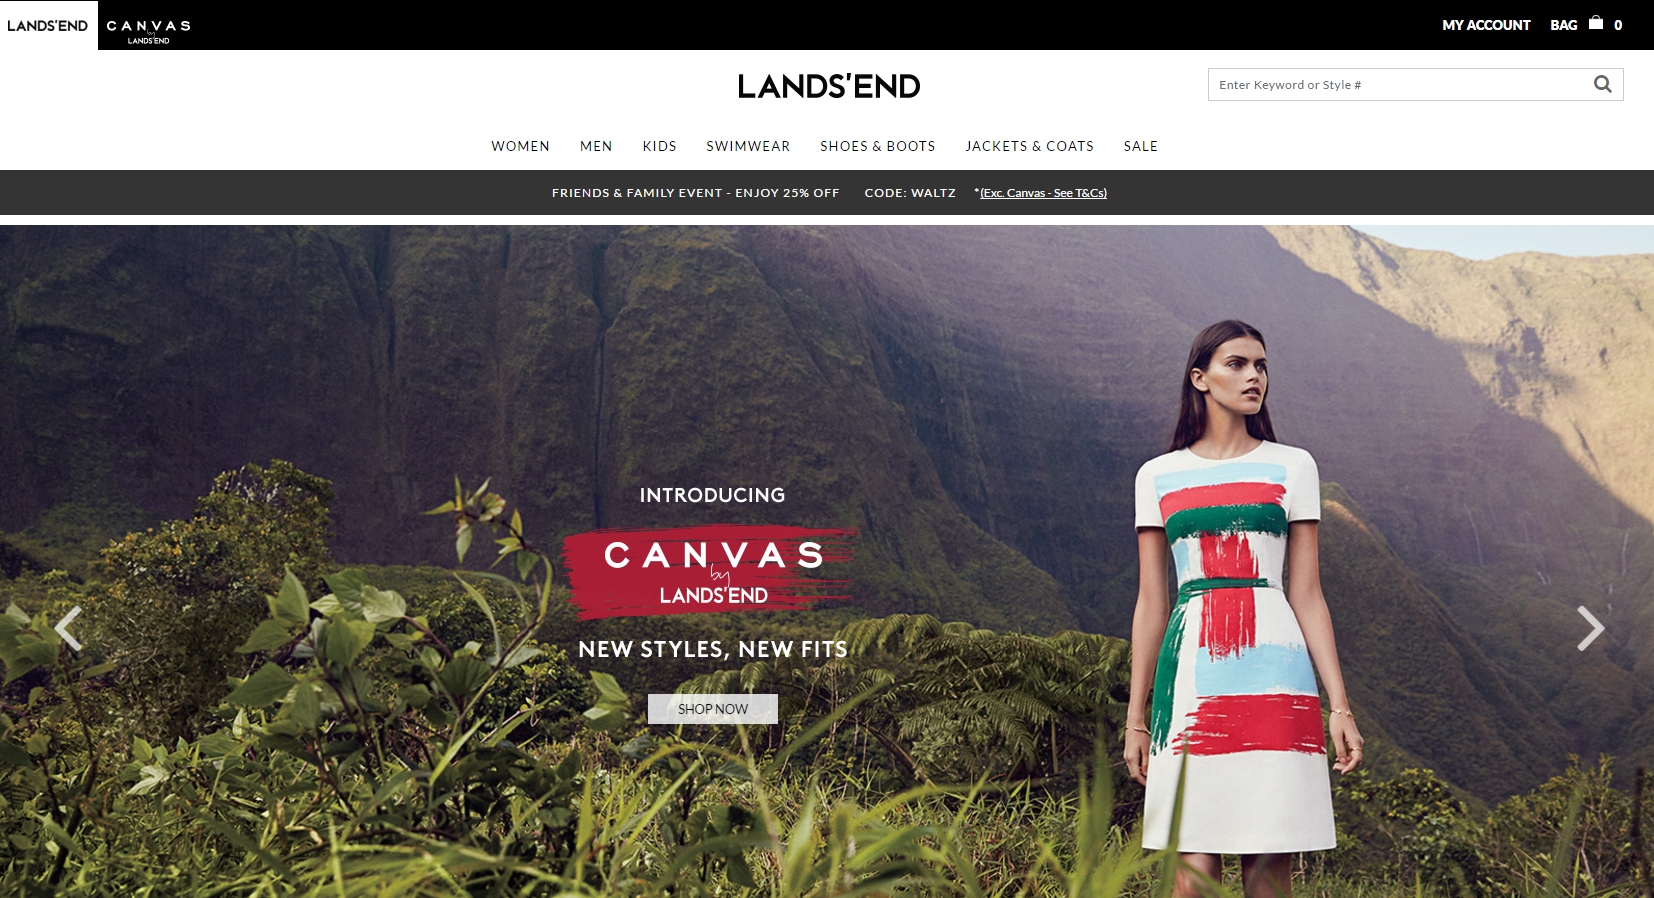 Nov 07, · Lands' End's nautical-inspired gear is a nod to the company's beginnings as a sailboat equipment company in the early s. The company's success led to an expansion into other products lines and found its niche in made-better apparel and elegant home goods.